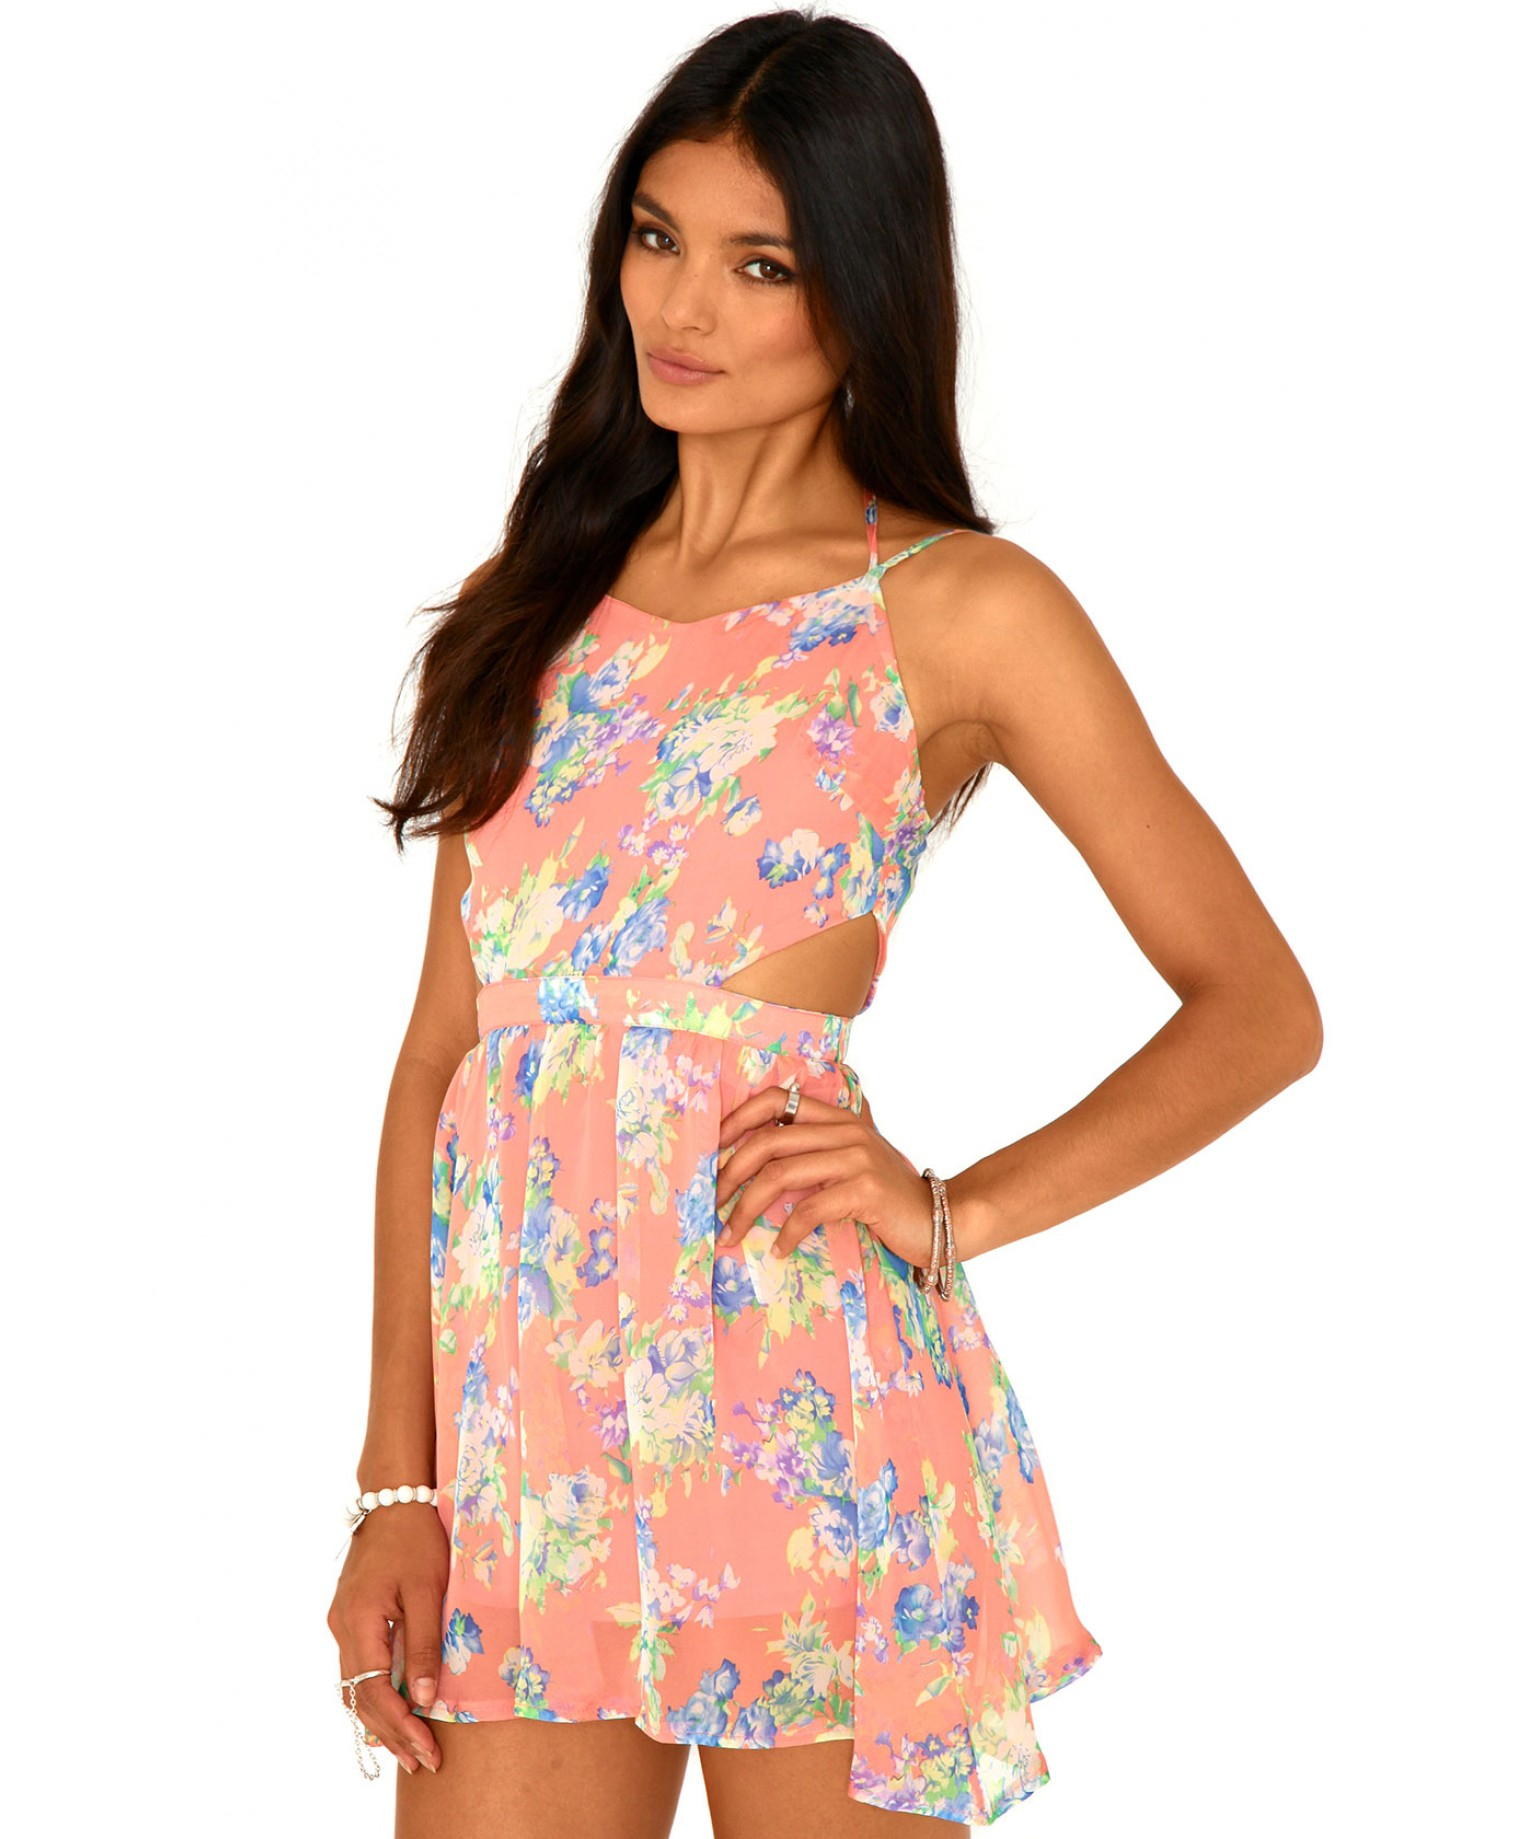 Lyst - Missguided Misty Floral Cut Out Skater Dress In Coral 6185b486f